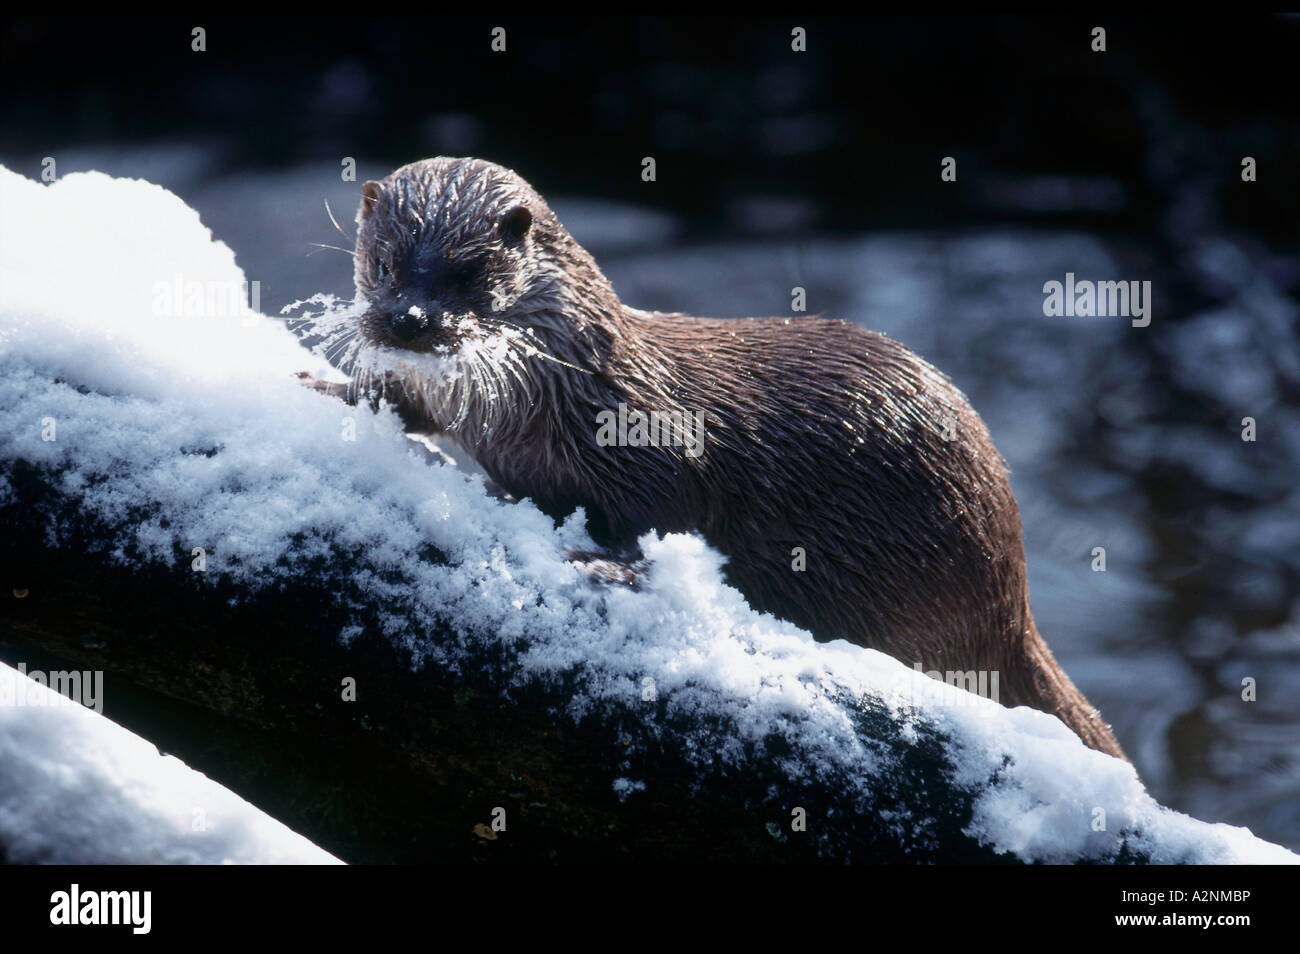 Common Otter (Lutra lutra) on frozen branch, Bavarian Forest National Park, Bavaria, Germany Stock Photo